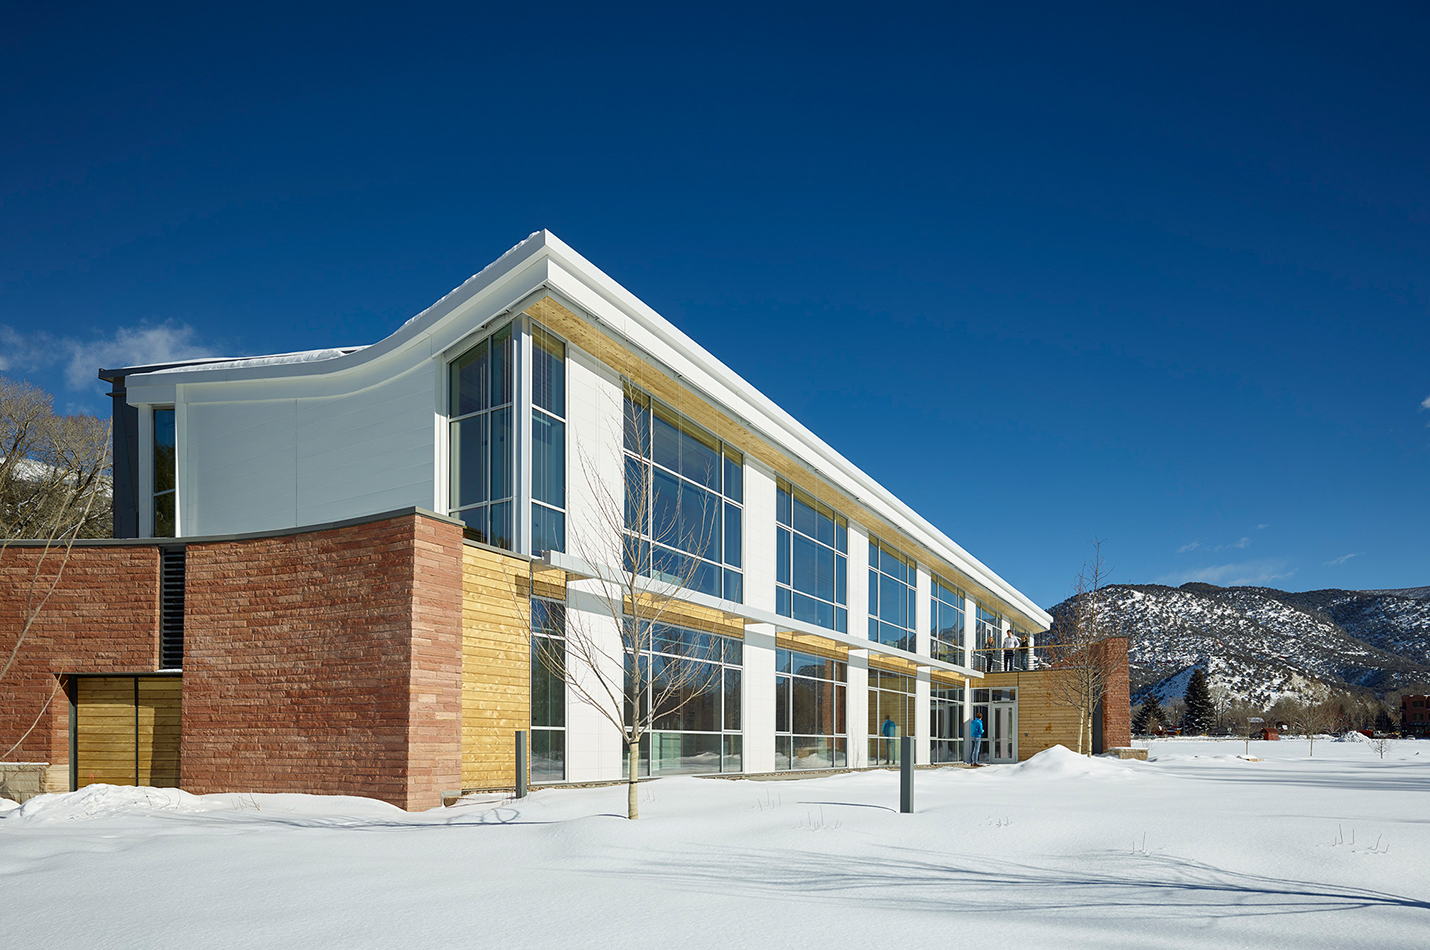 The Rocky Mountain Institute Innovation Center